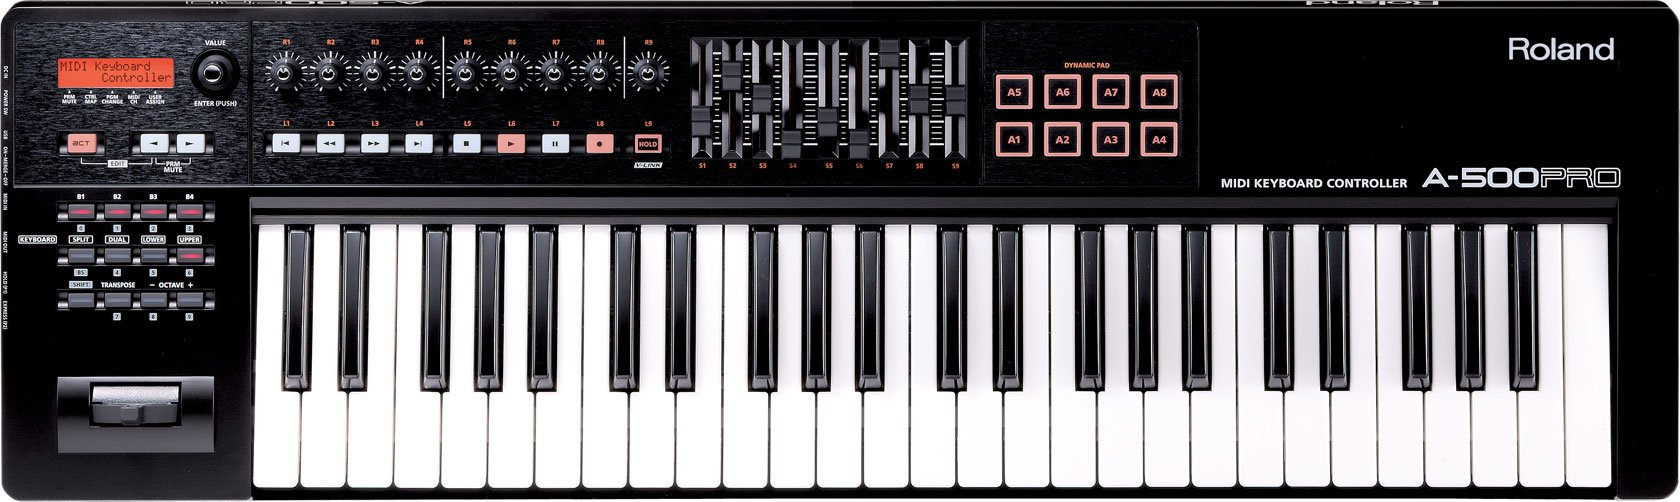 Roland 49-key MIDI Keyboard Controller, black (A-500PRO-R) by Roland